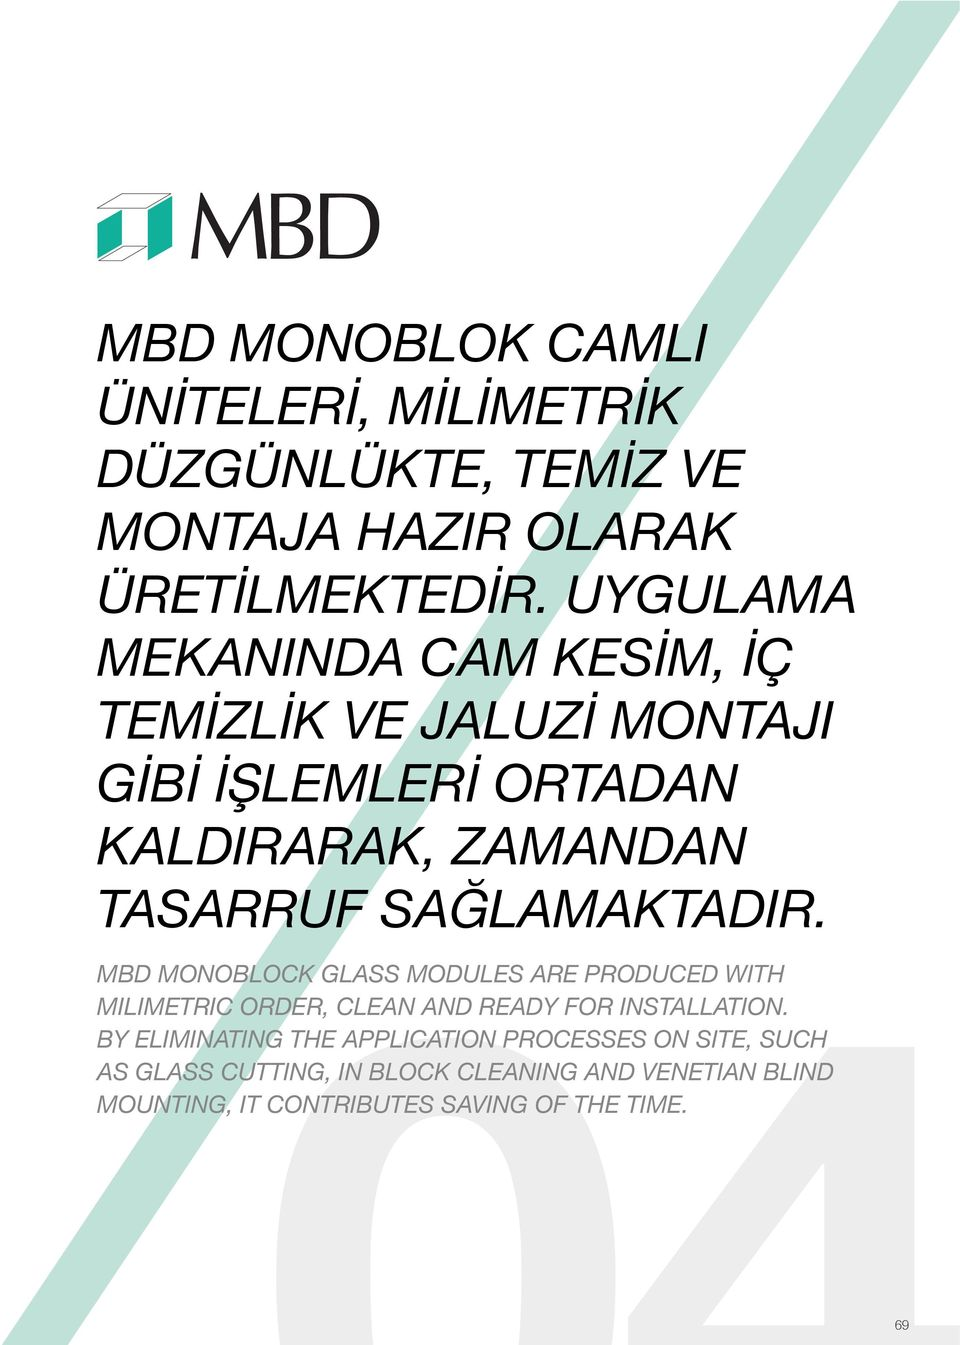 SAĞLAMAKTADIR. MONOBLOCK GLASS MODULES ARE PRODUCED WITH MILIMETRIC ORDER, CLEAN AND READY FOR INSTALLATION.